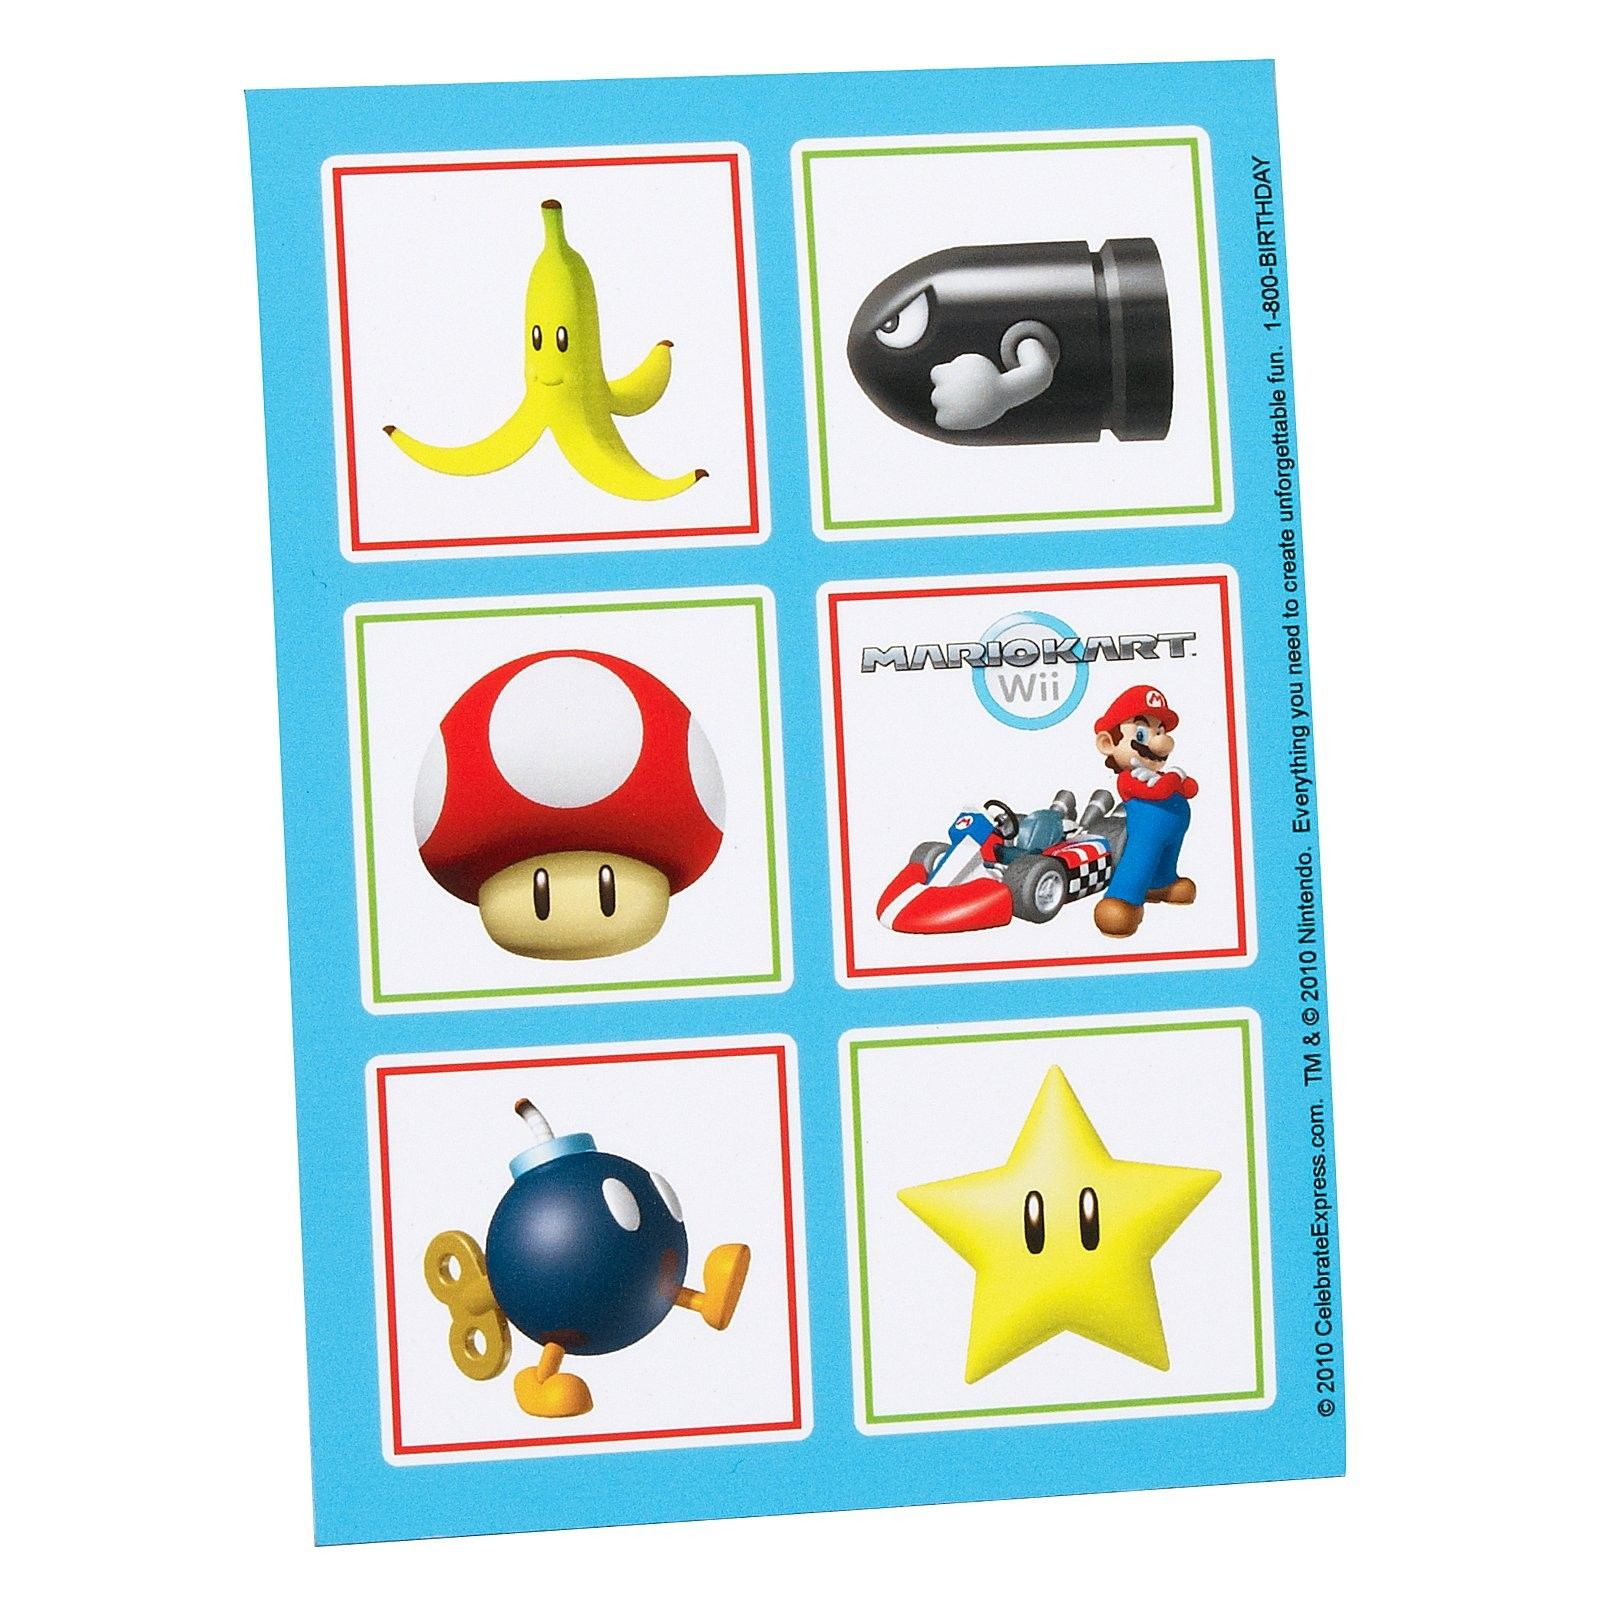 Mario Kart Wii Sticker Sheets - Includes 4 Sticker Sheets.